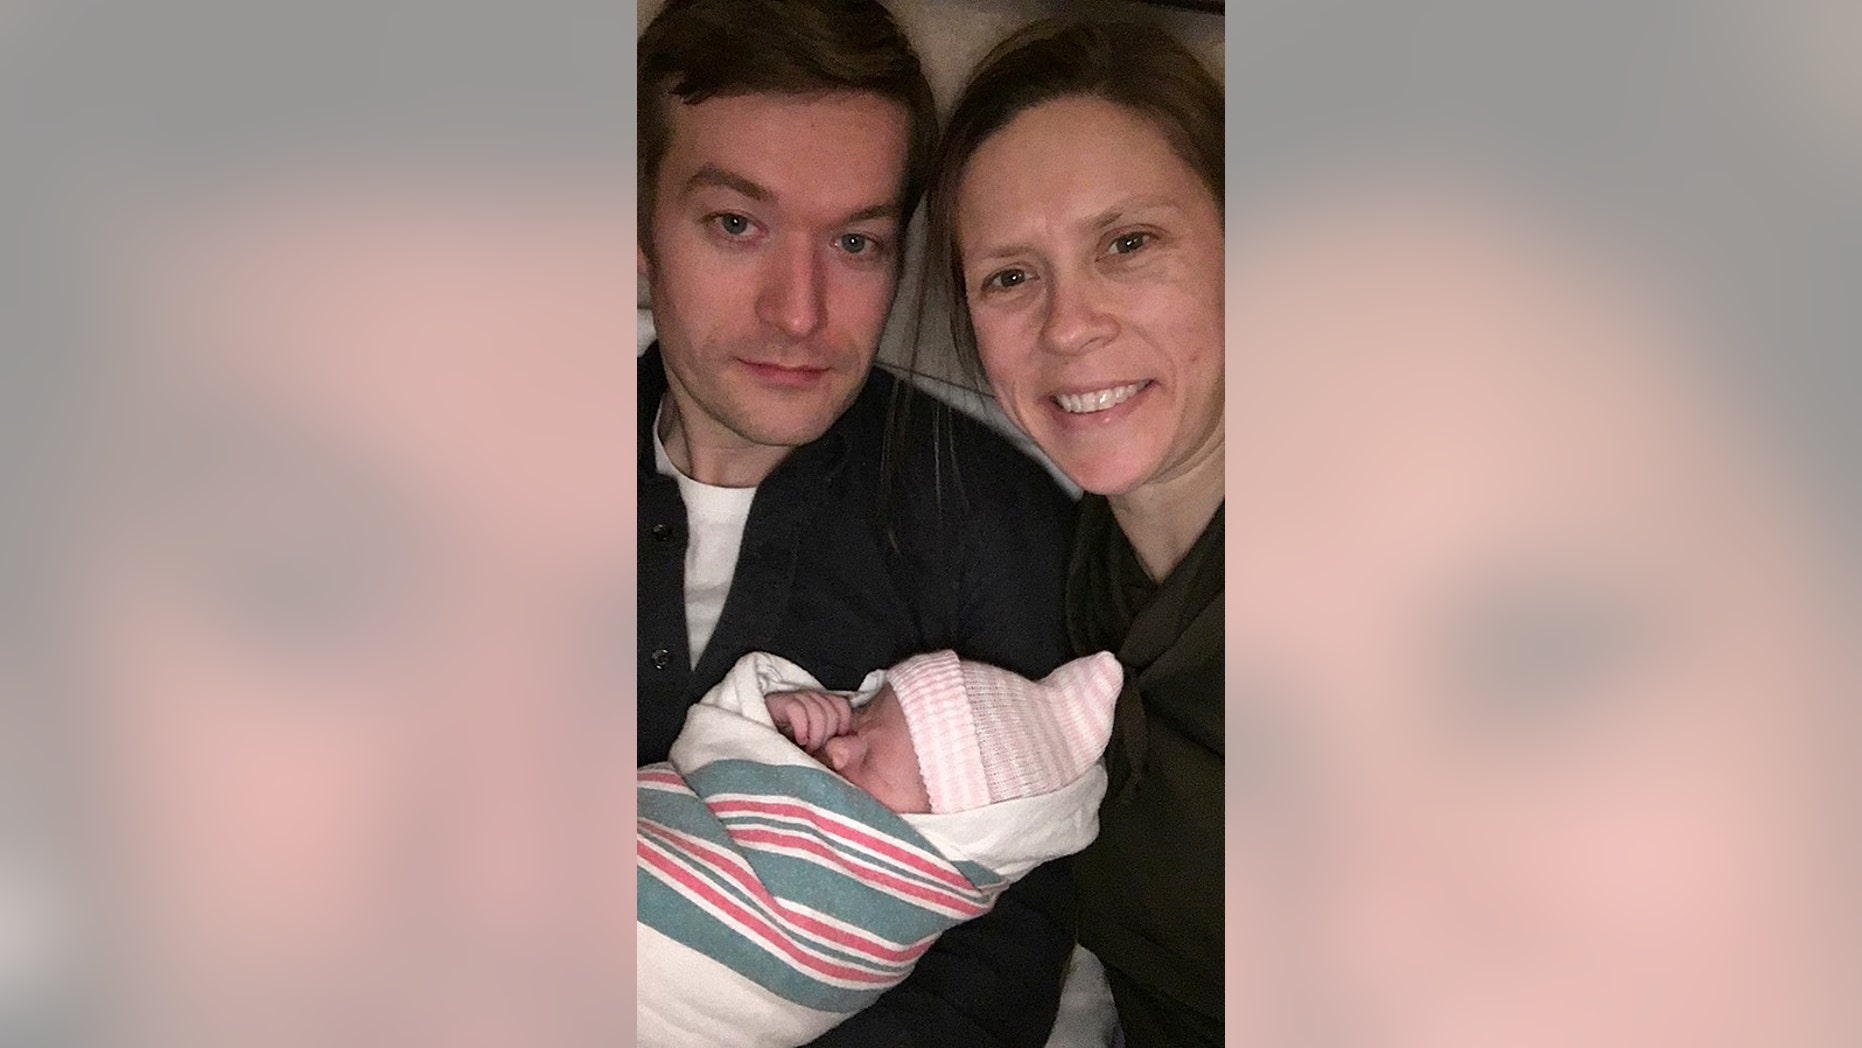 OB-GYN Hilary Conway is pictured with her husband and newborn daughter. She delivered her patient's twins just 14 hours after she gave birth.